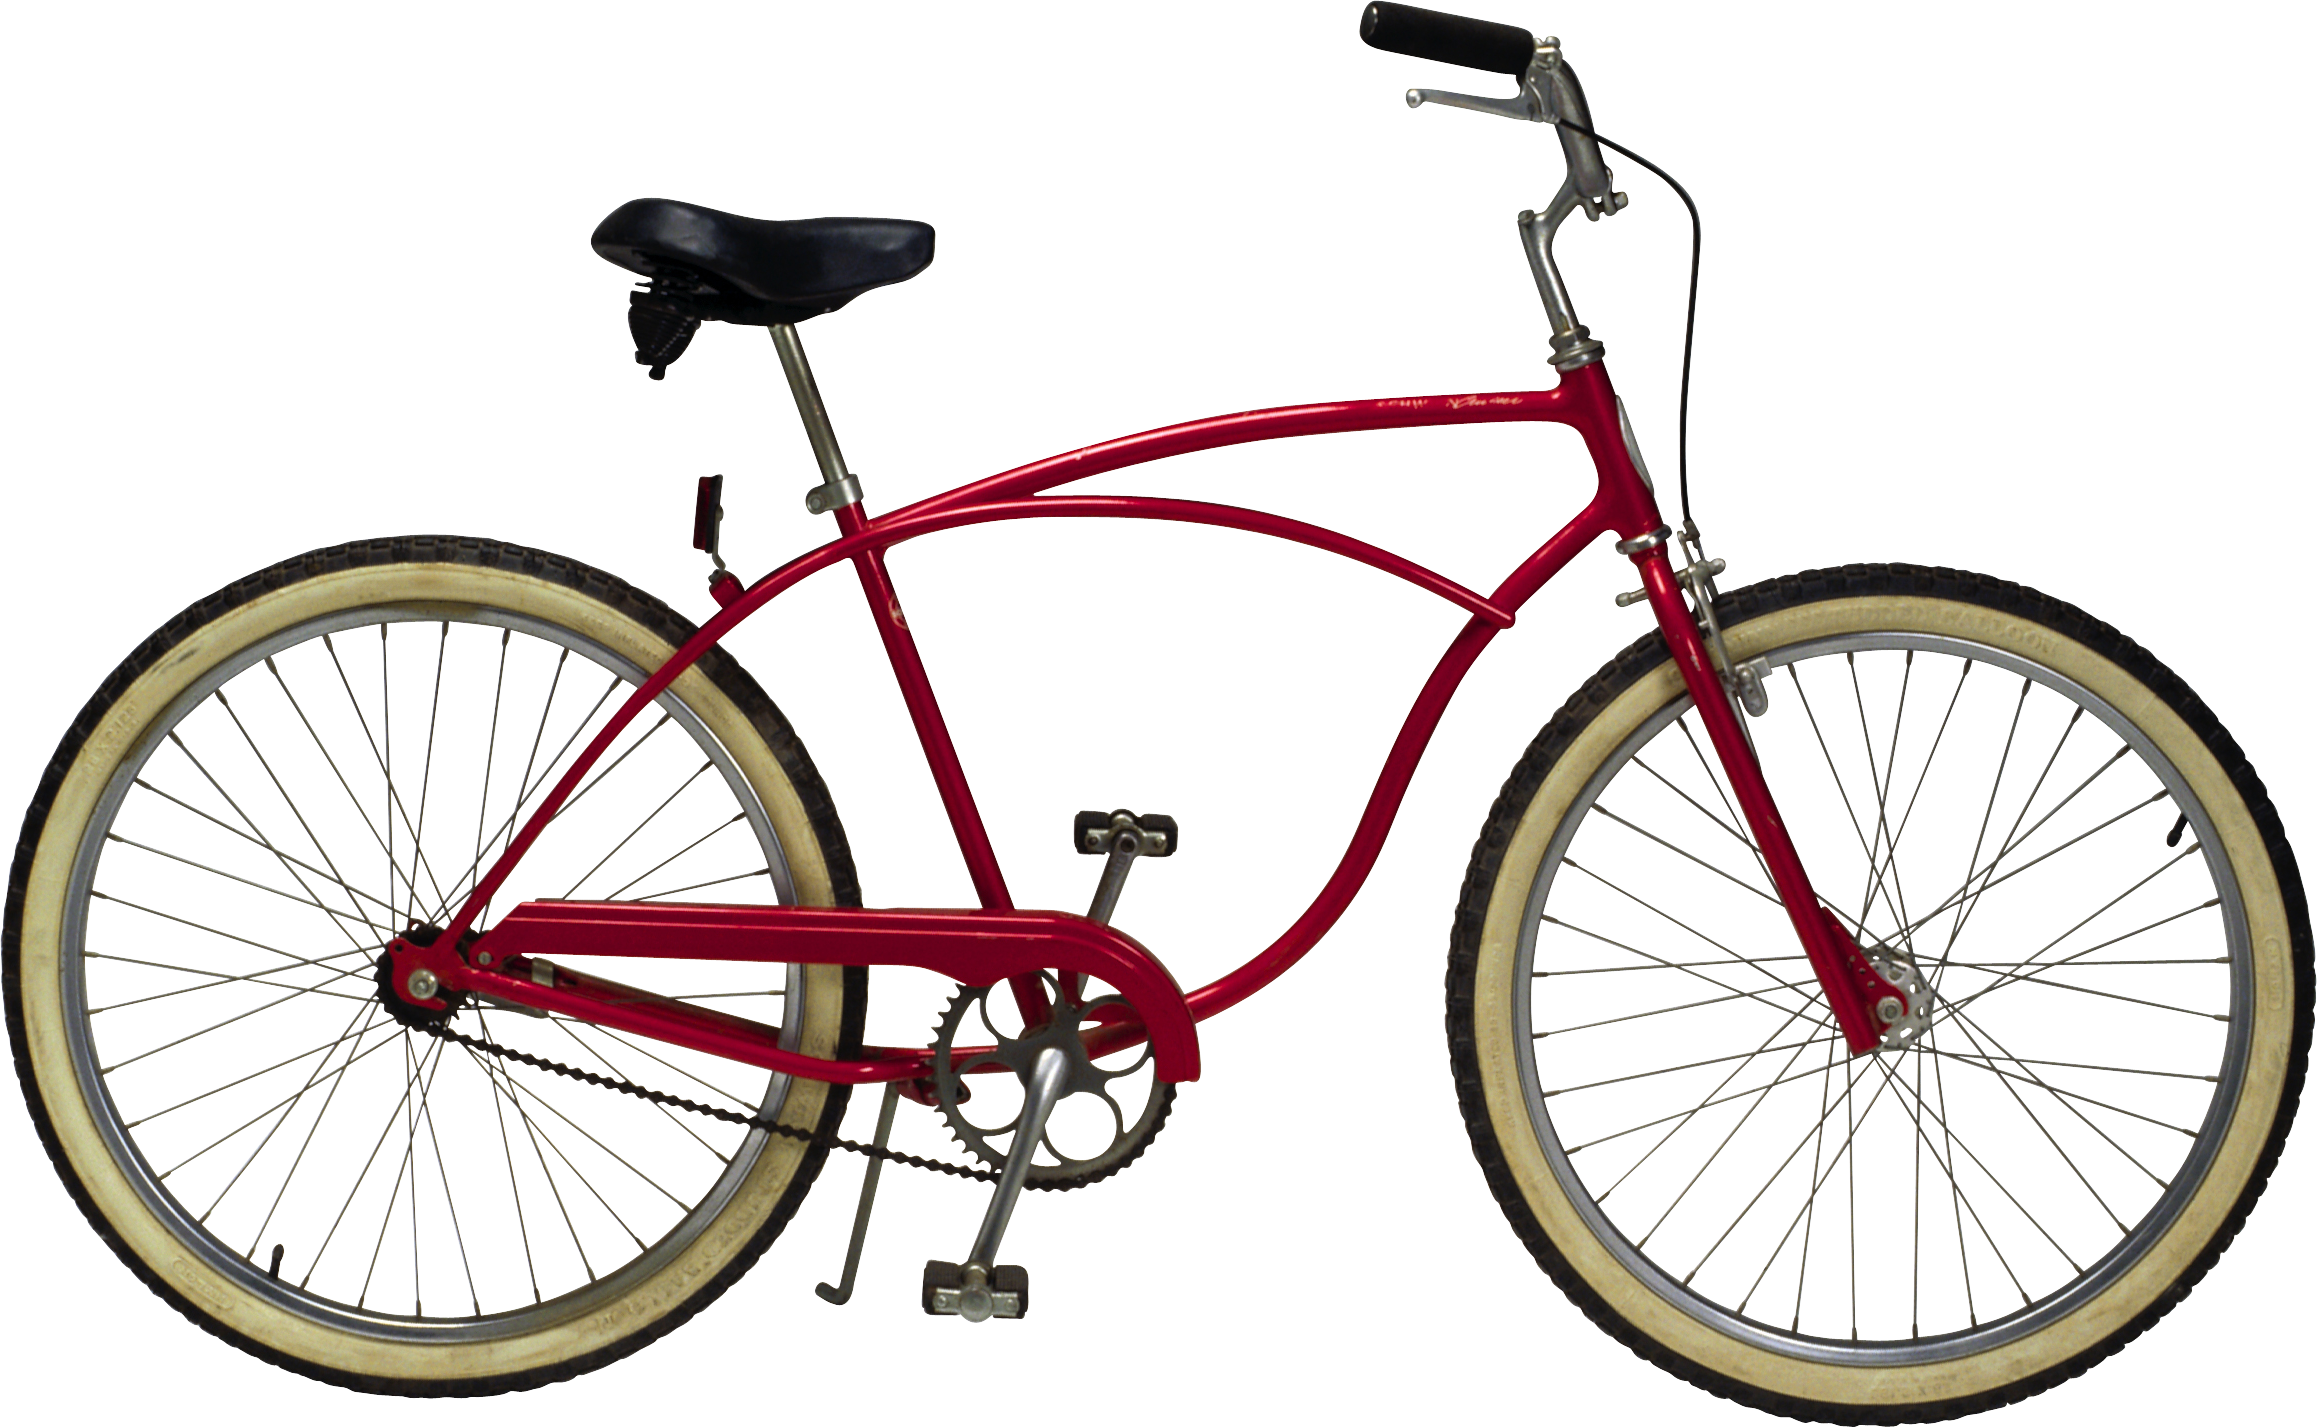 Bike clipart transparent background. Bicycle png image